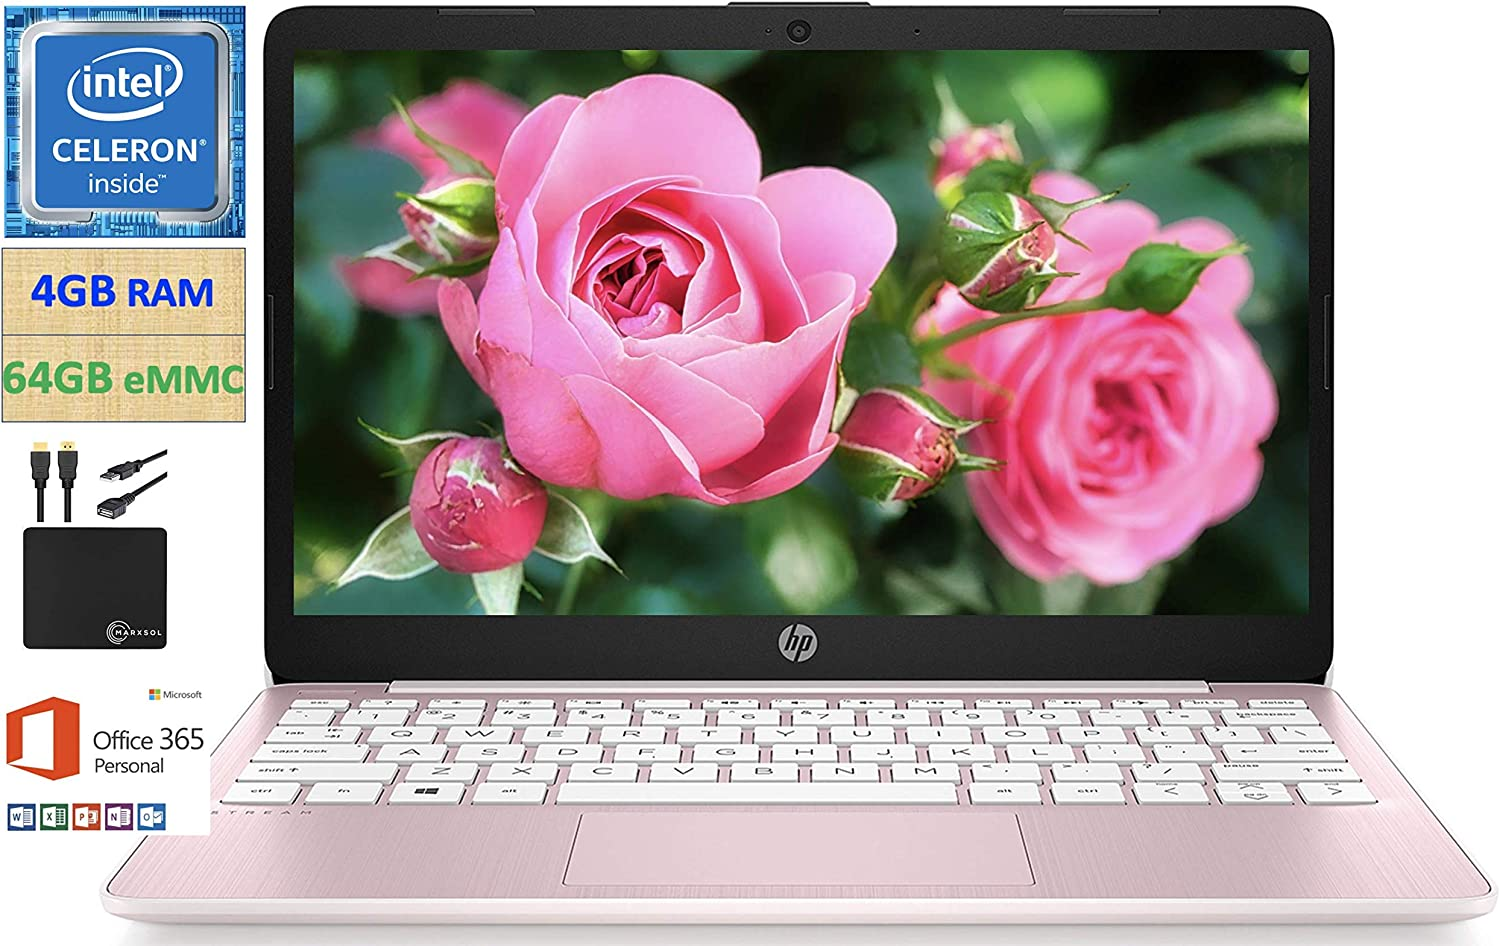 2021 Newest HP 11.6 inch Thin Light HD Laptop Computer, Intel Celeron N4020 up to 2.8 GHz, 4GB DDR4, 64GB eMMC, WiFi , Webcam, 1-Year Office 365, Up 11 Hours, Windows 10 S, Rose + Marxsol Cables